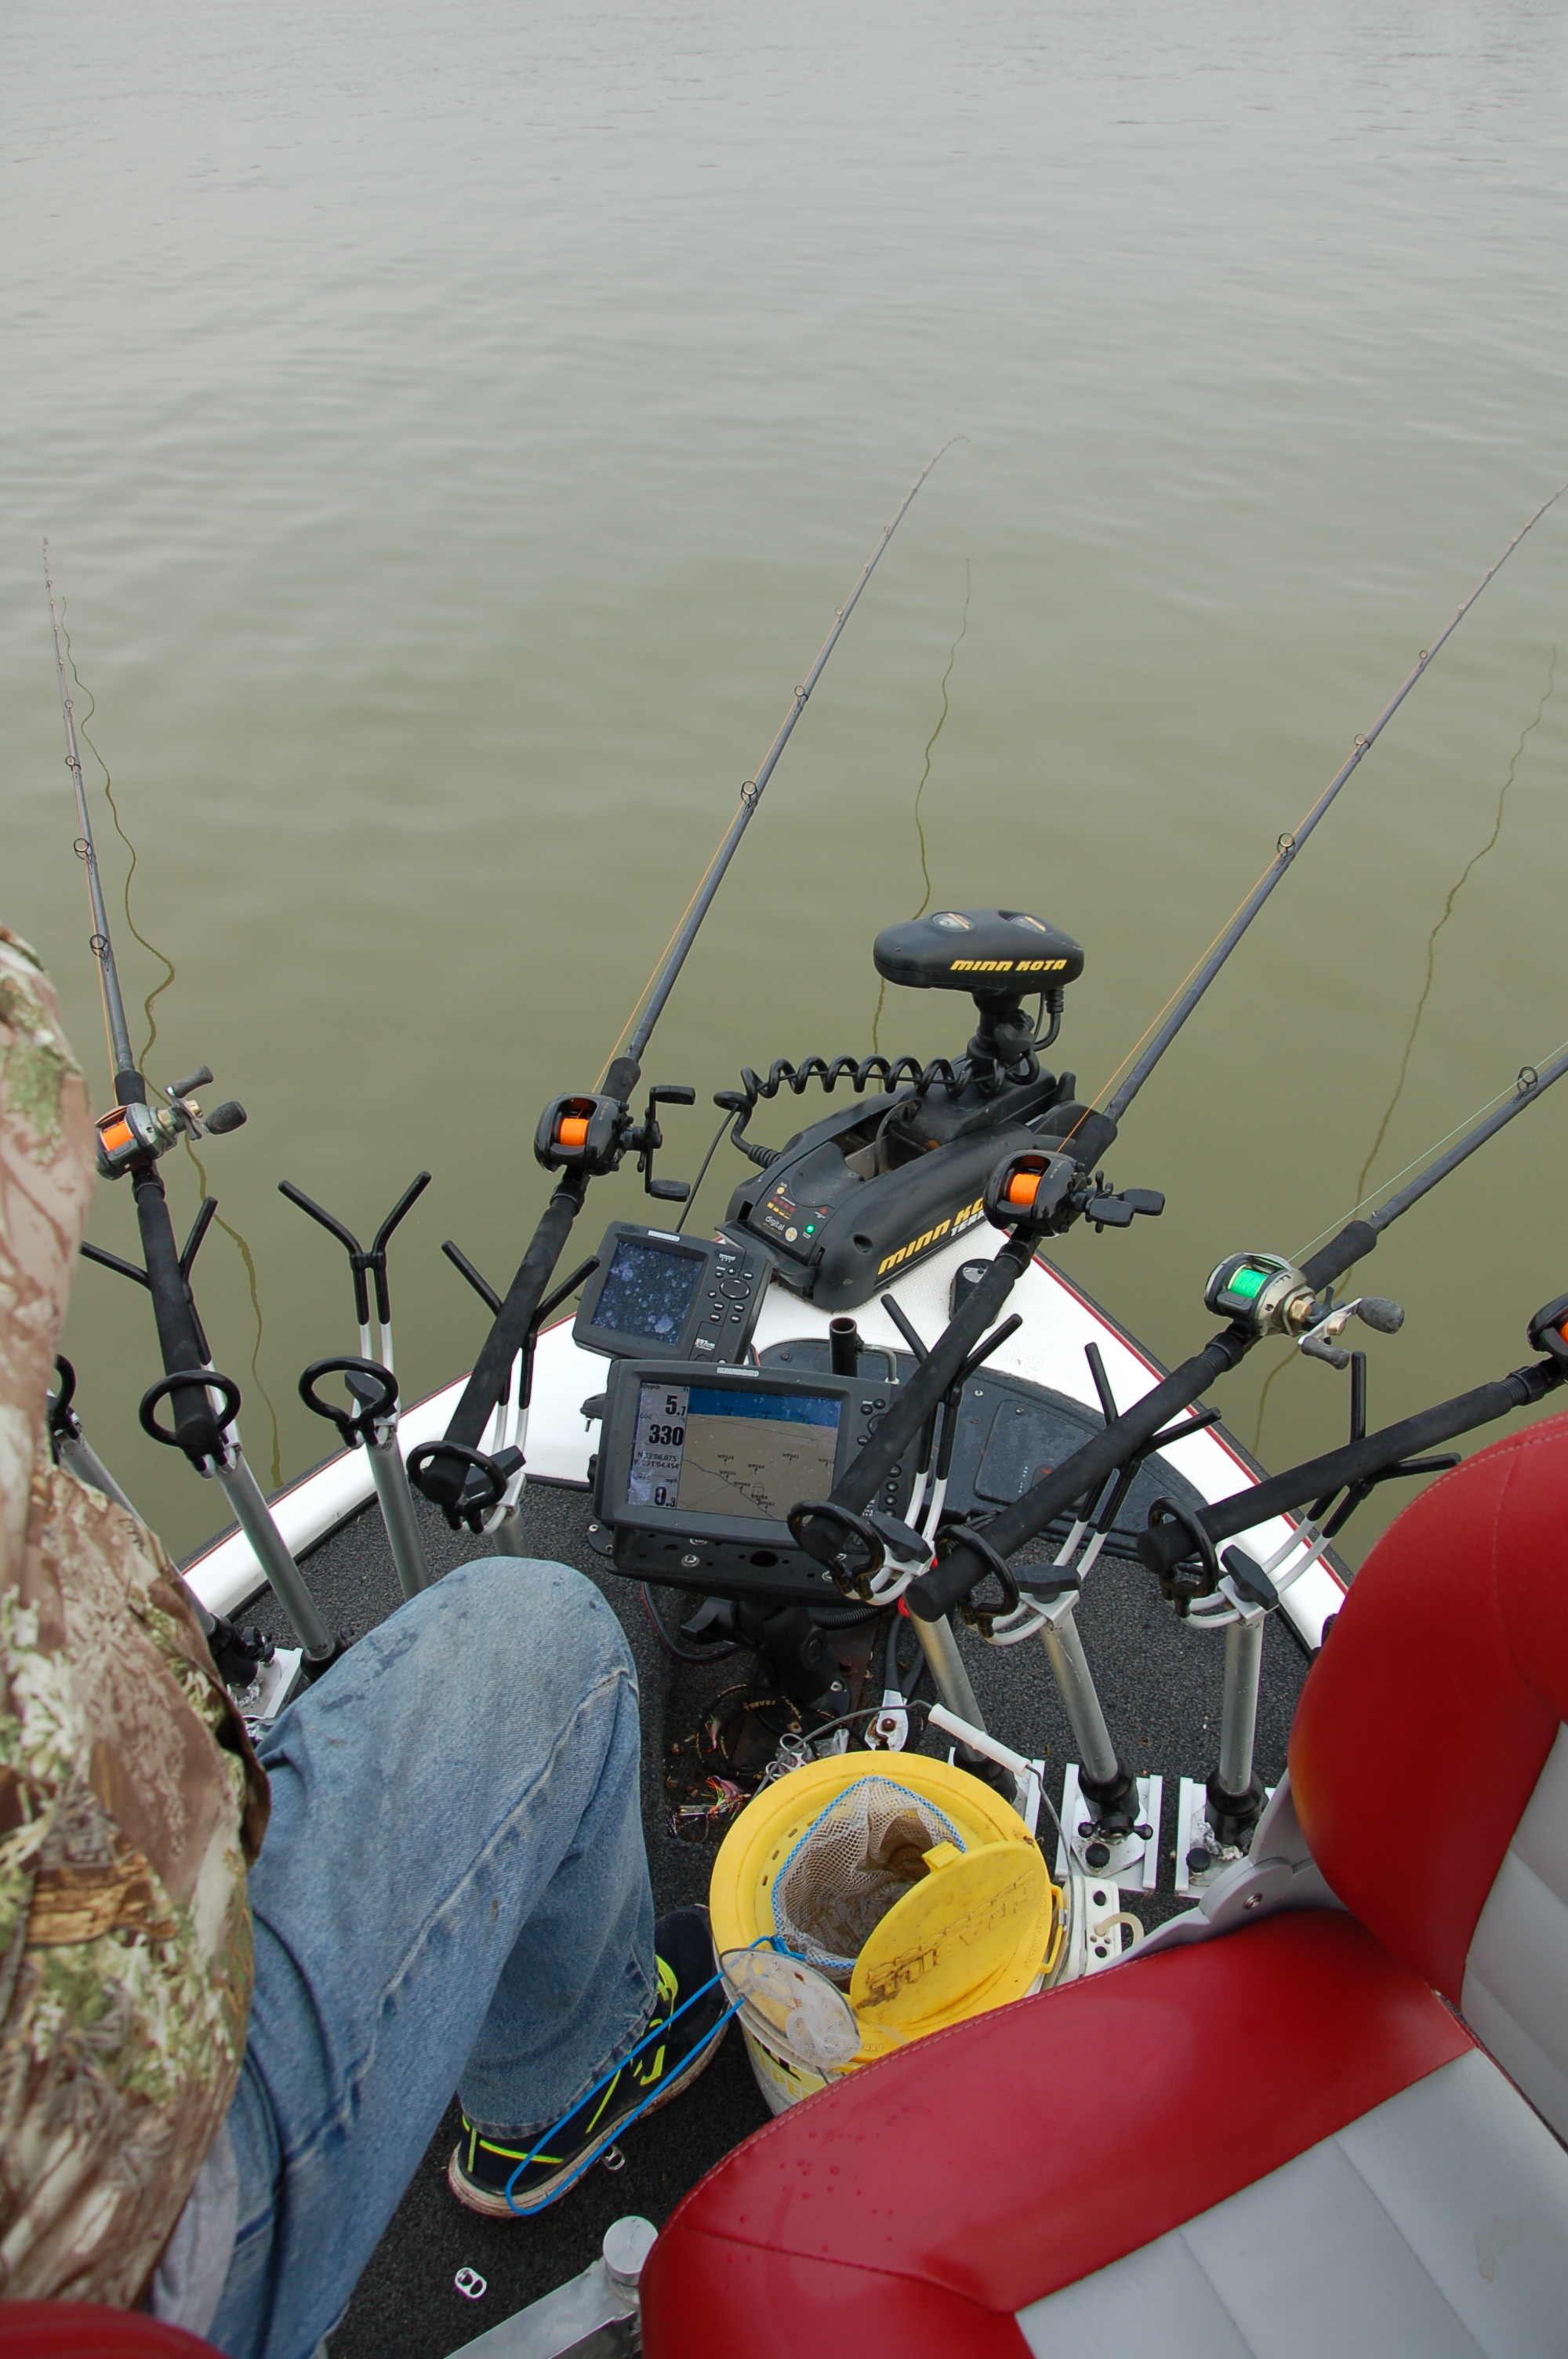 Spider Rigging and Minnow Jigging